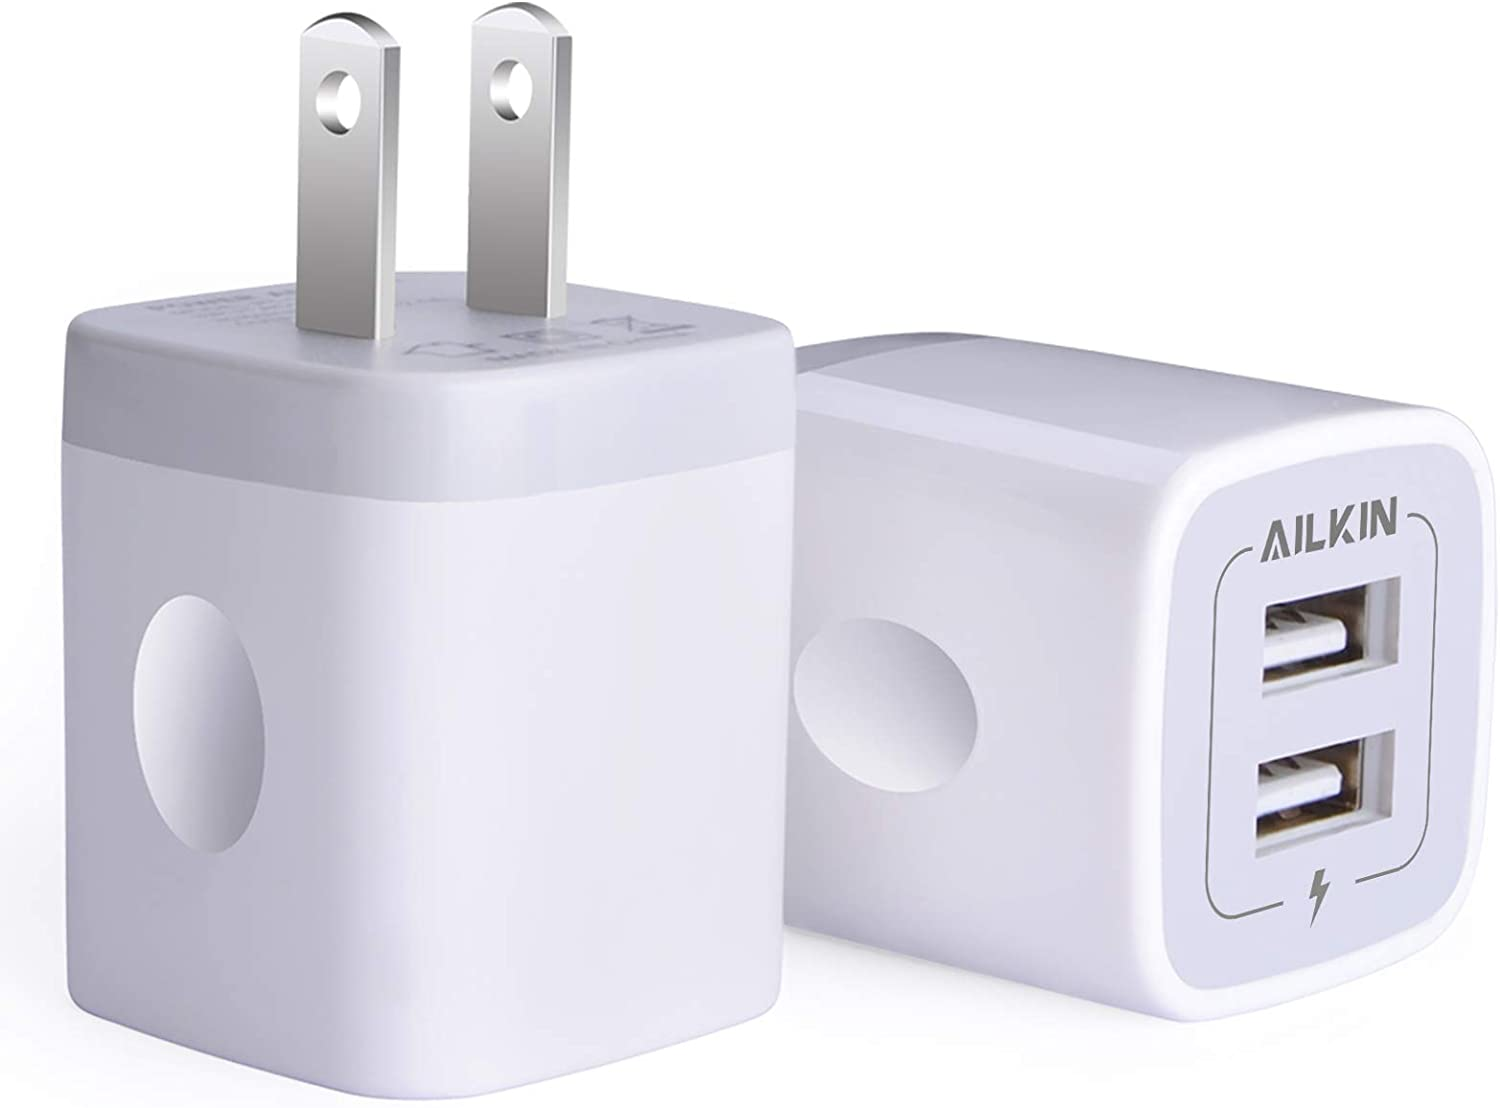 USB Wall Japan Maker New Charger Adapter AILKIN Dual 2.1Amp Por 2-Pack Superior